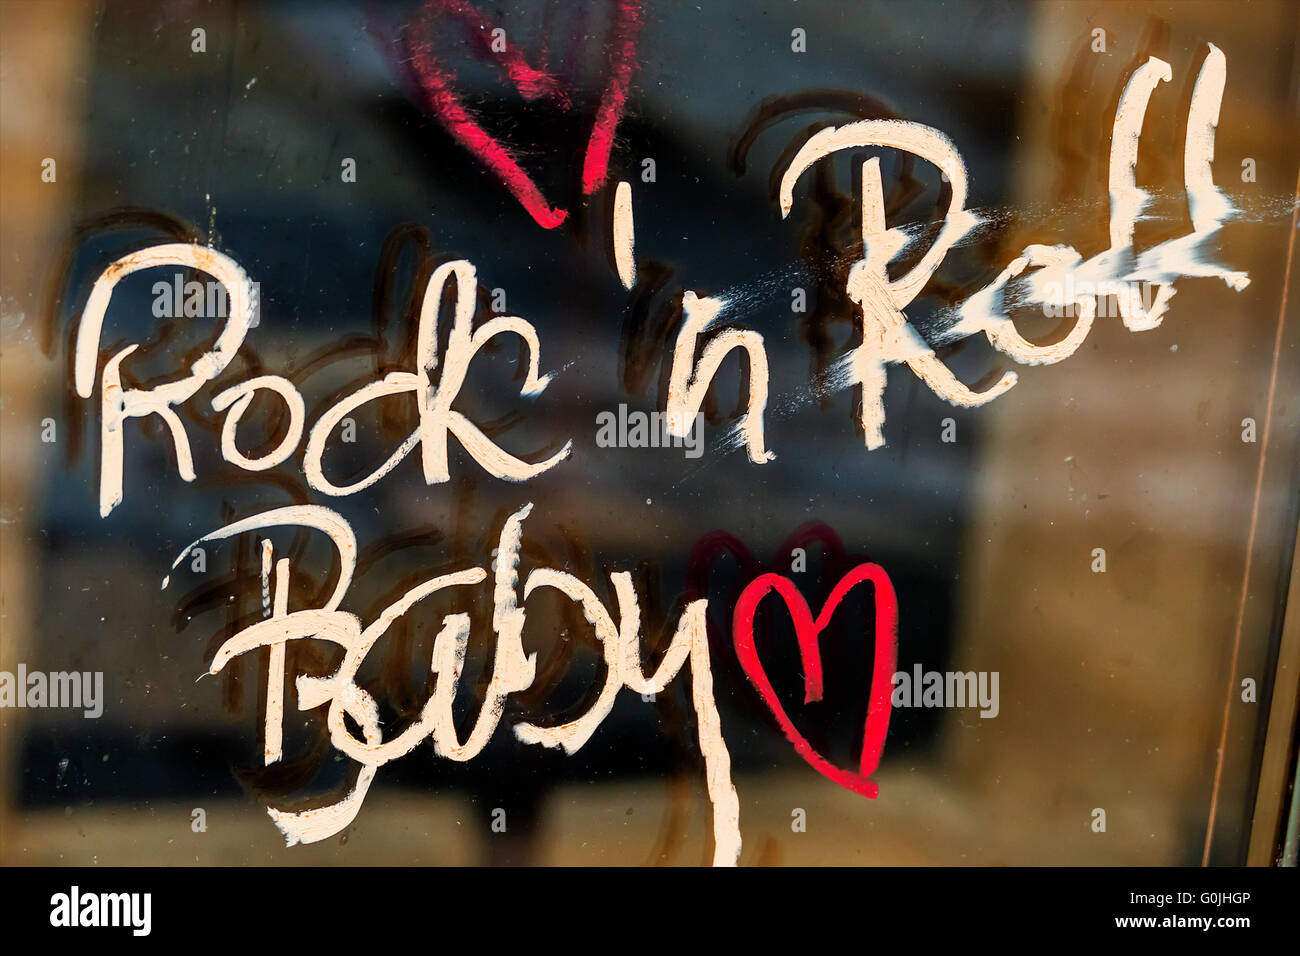 font rock'n roll baby - Stock Image